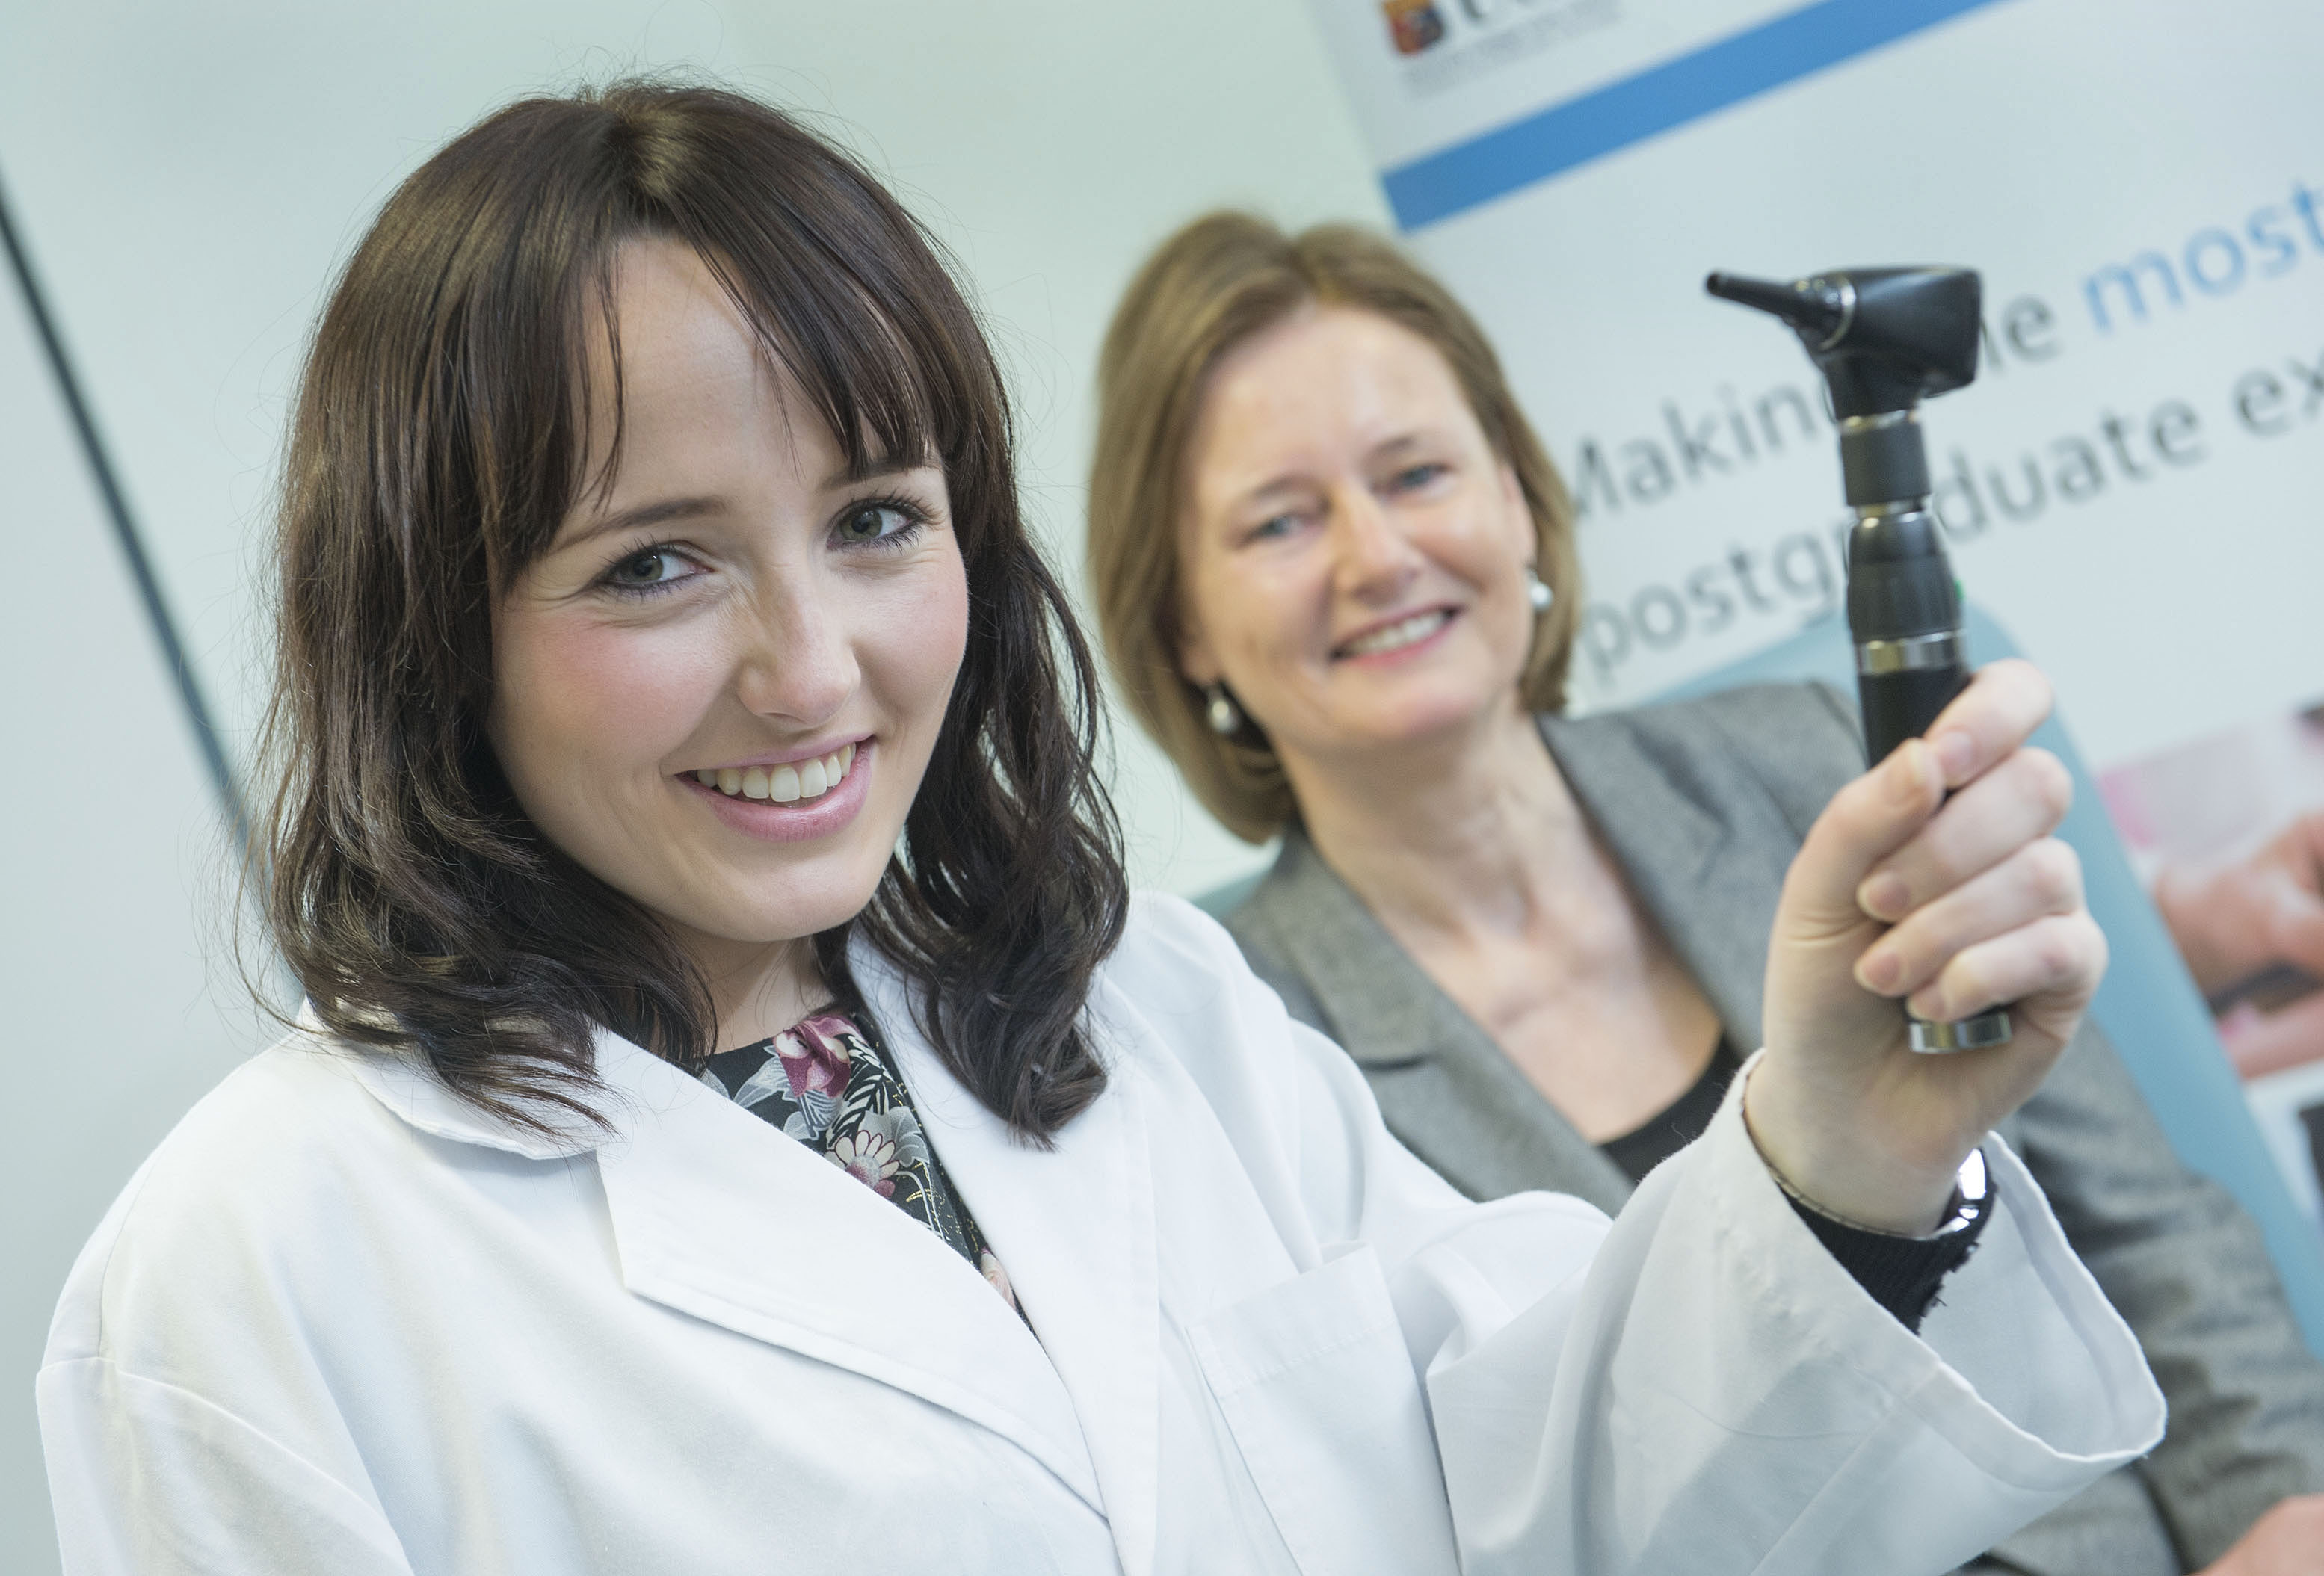 School of Clinical Therapies, UCC launches MSc in Audiology